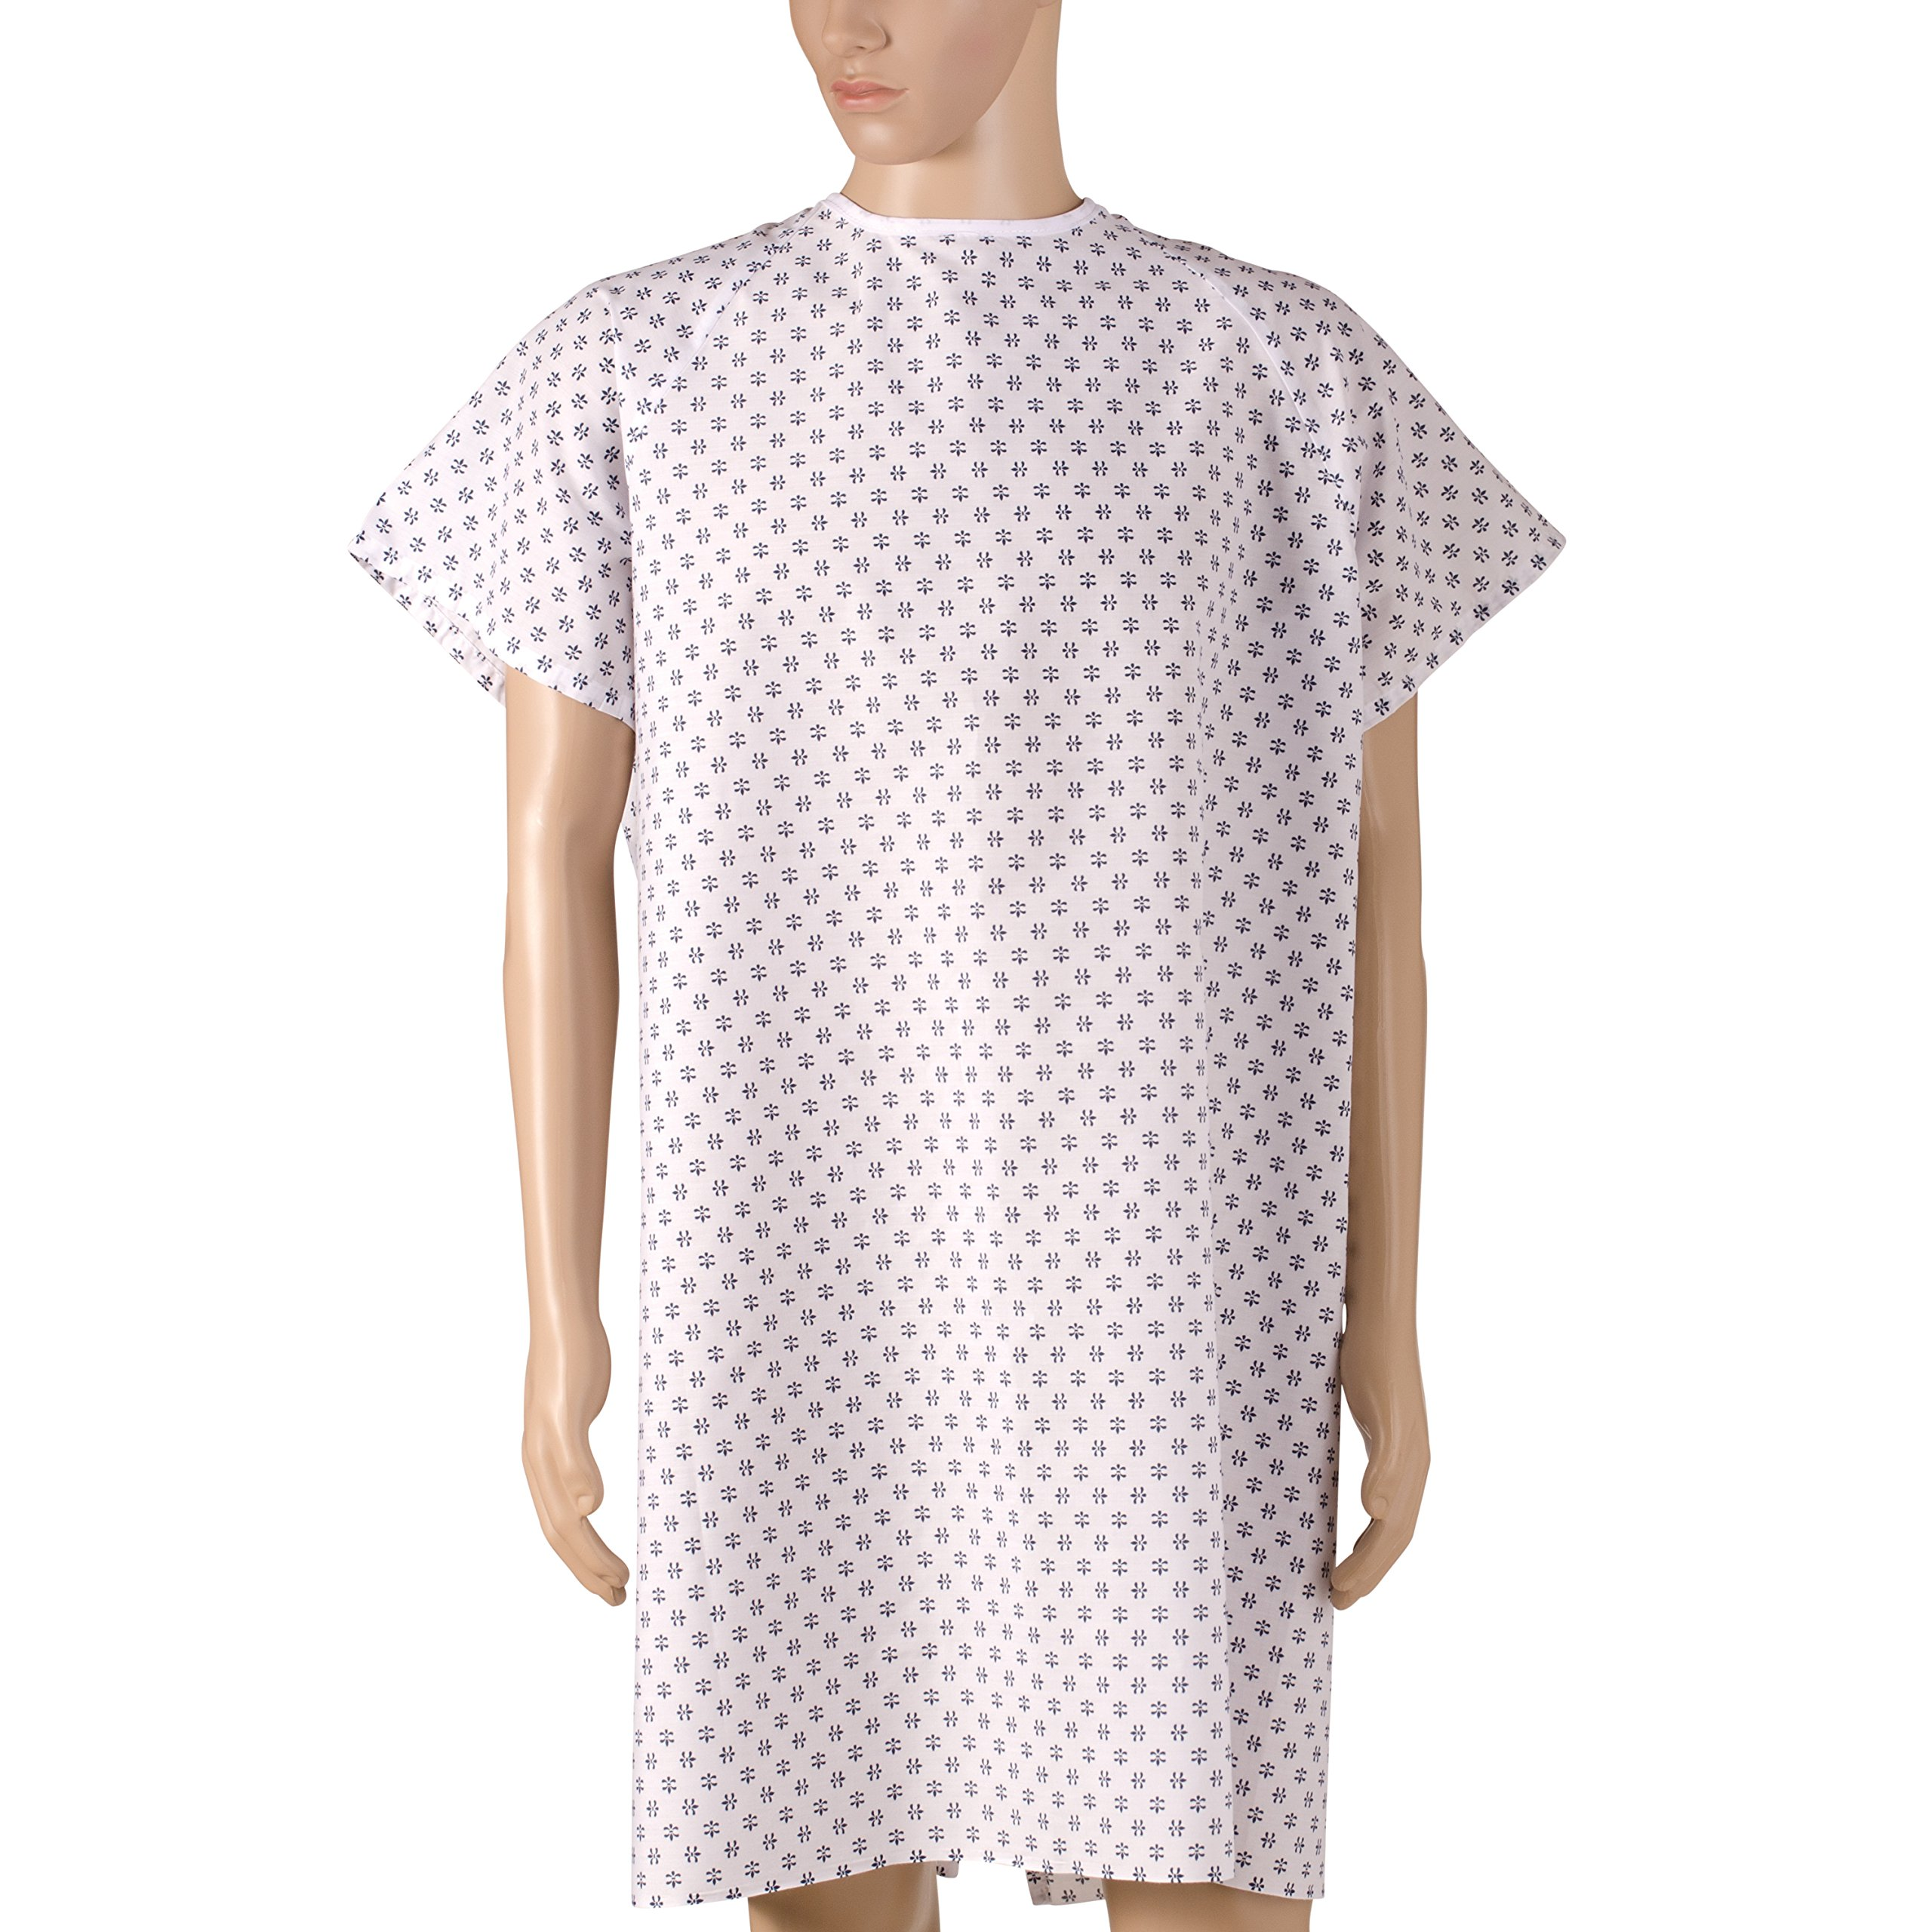 DMI Patient Unisex Comfortable Hospital Gowns with Back Tie, Print, 12-Count by MABIS DMI Healthcare